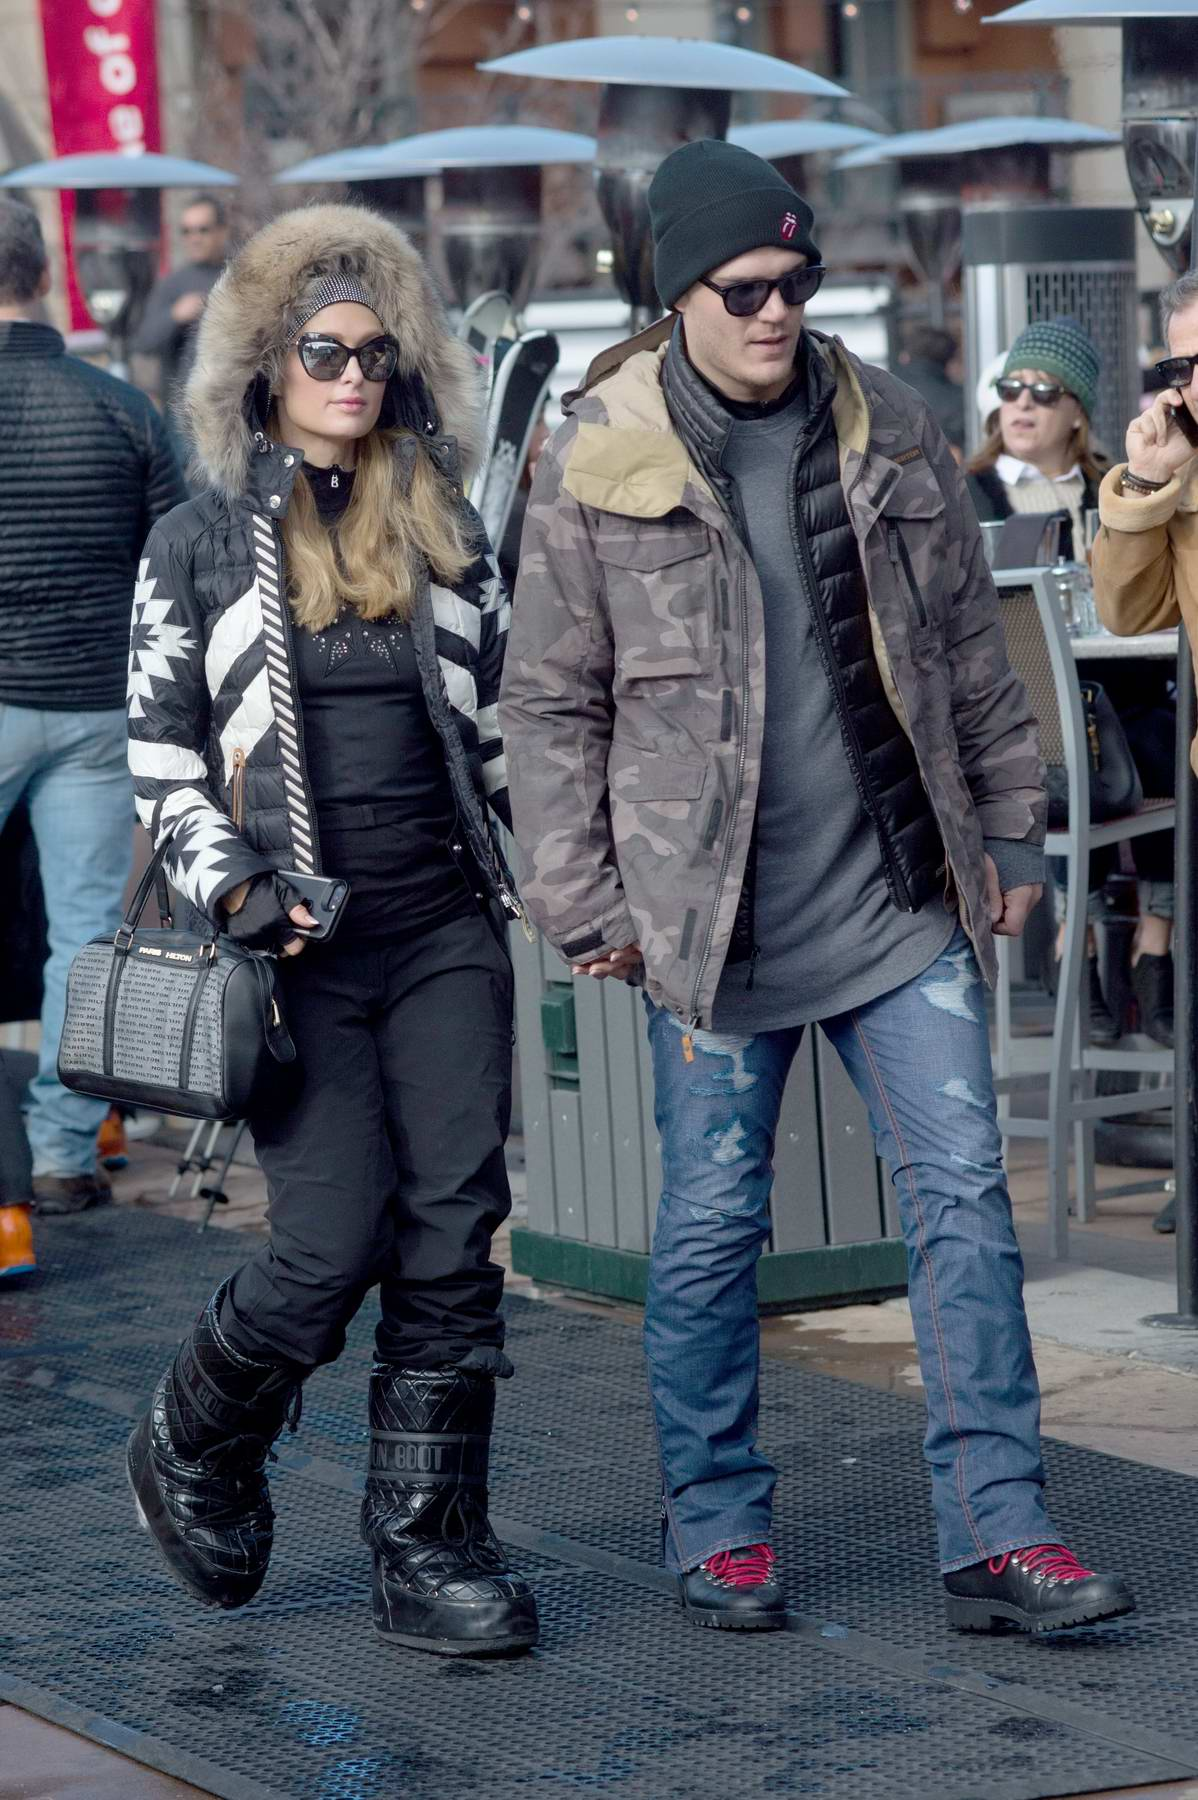 Paris Hilton and boyfriend Chris Zylka hold hands as they head to go skiing in Aspen, Colorado